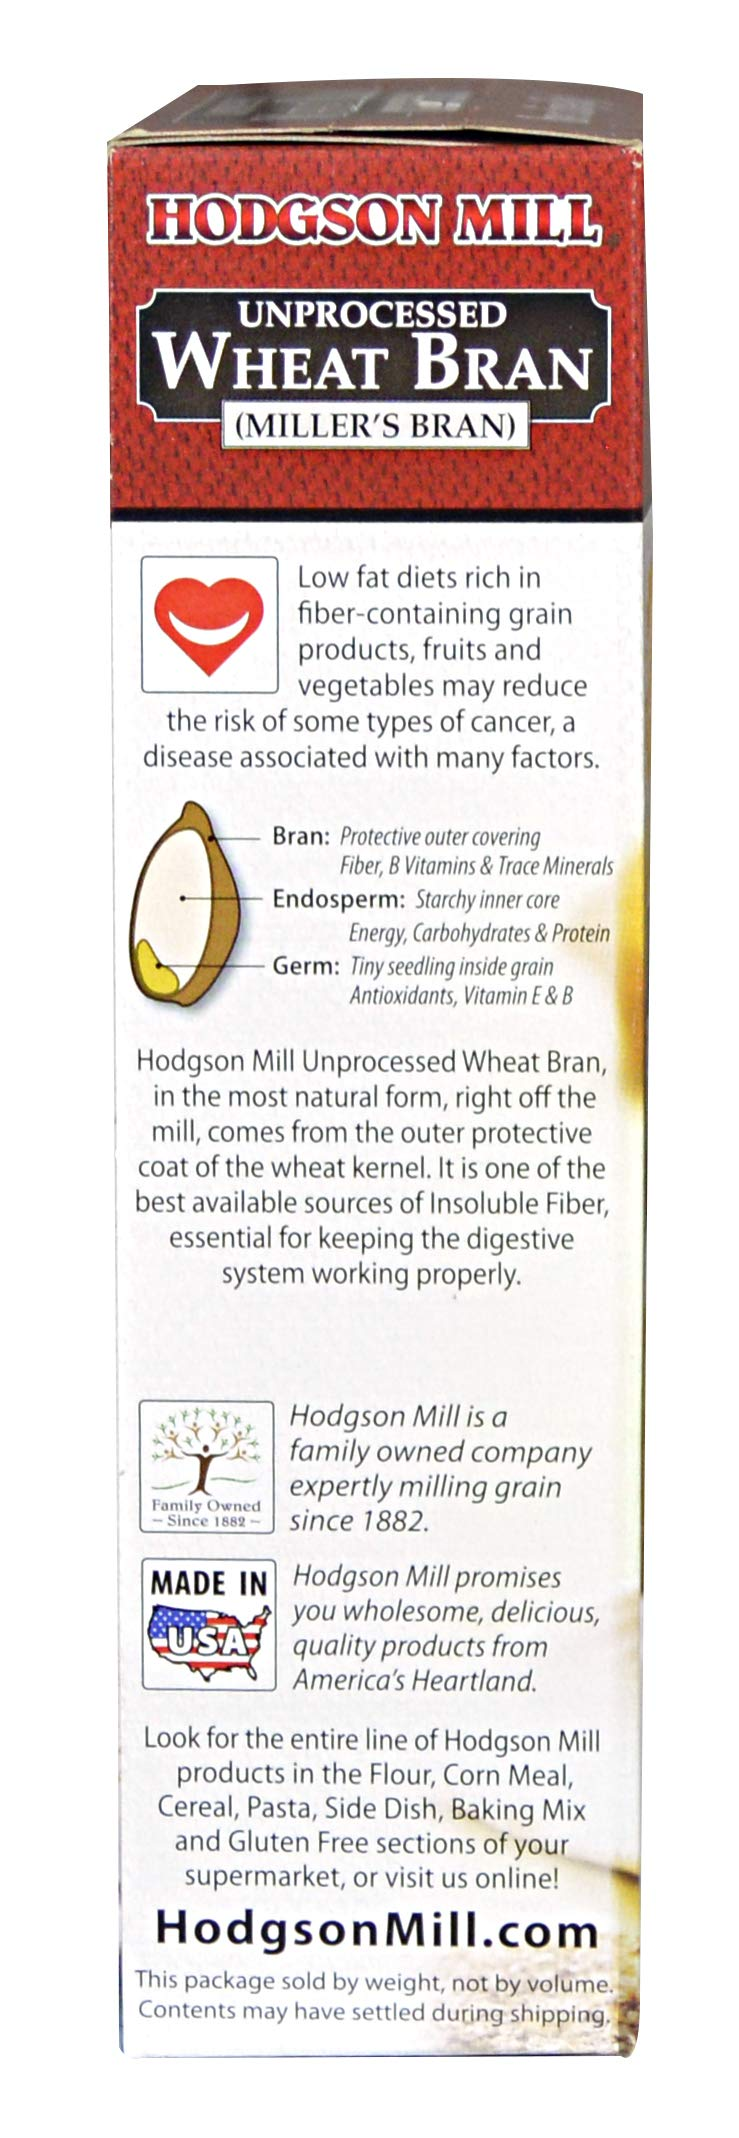 Hodgson Mill Wheat Bran, Unprocessed Millers Bran, 12-Ounce (Pack of 6) by Hodgson Mill (Image #6)